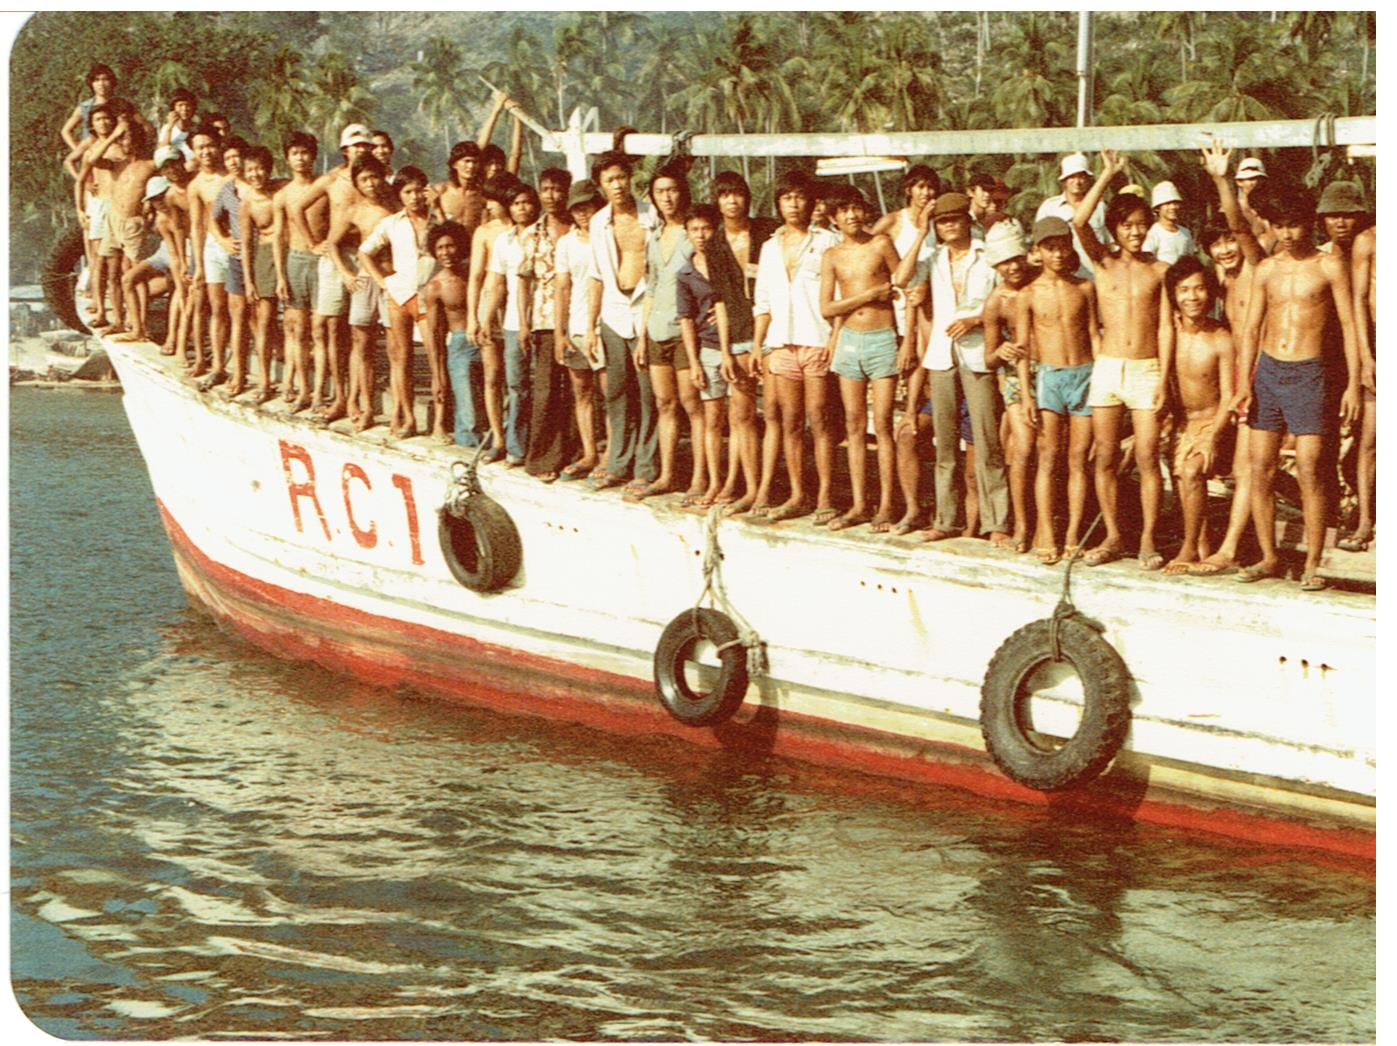 Pulau Bidong, MRCS boat with camp residents (refugees), 1979